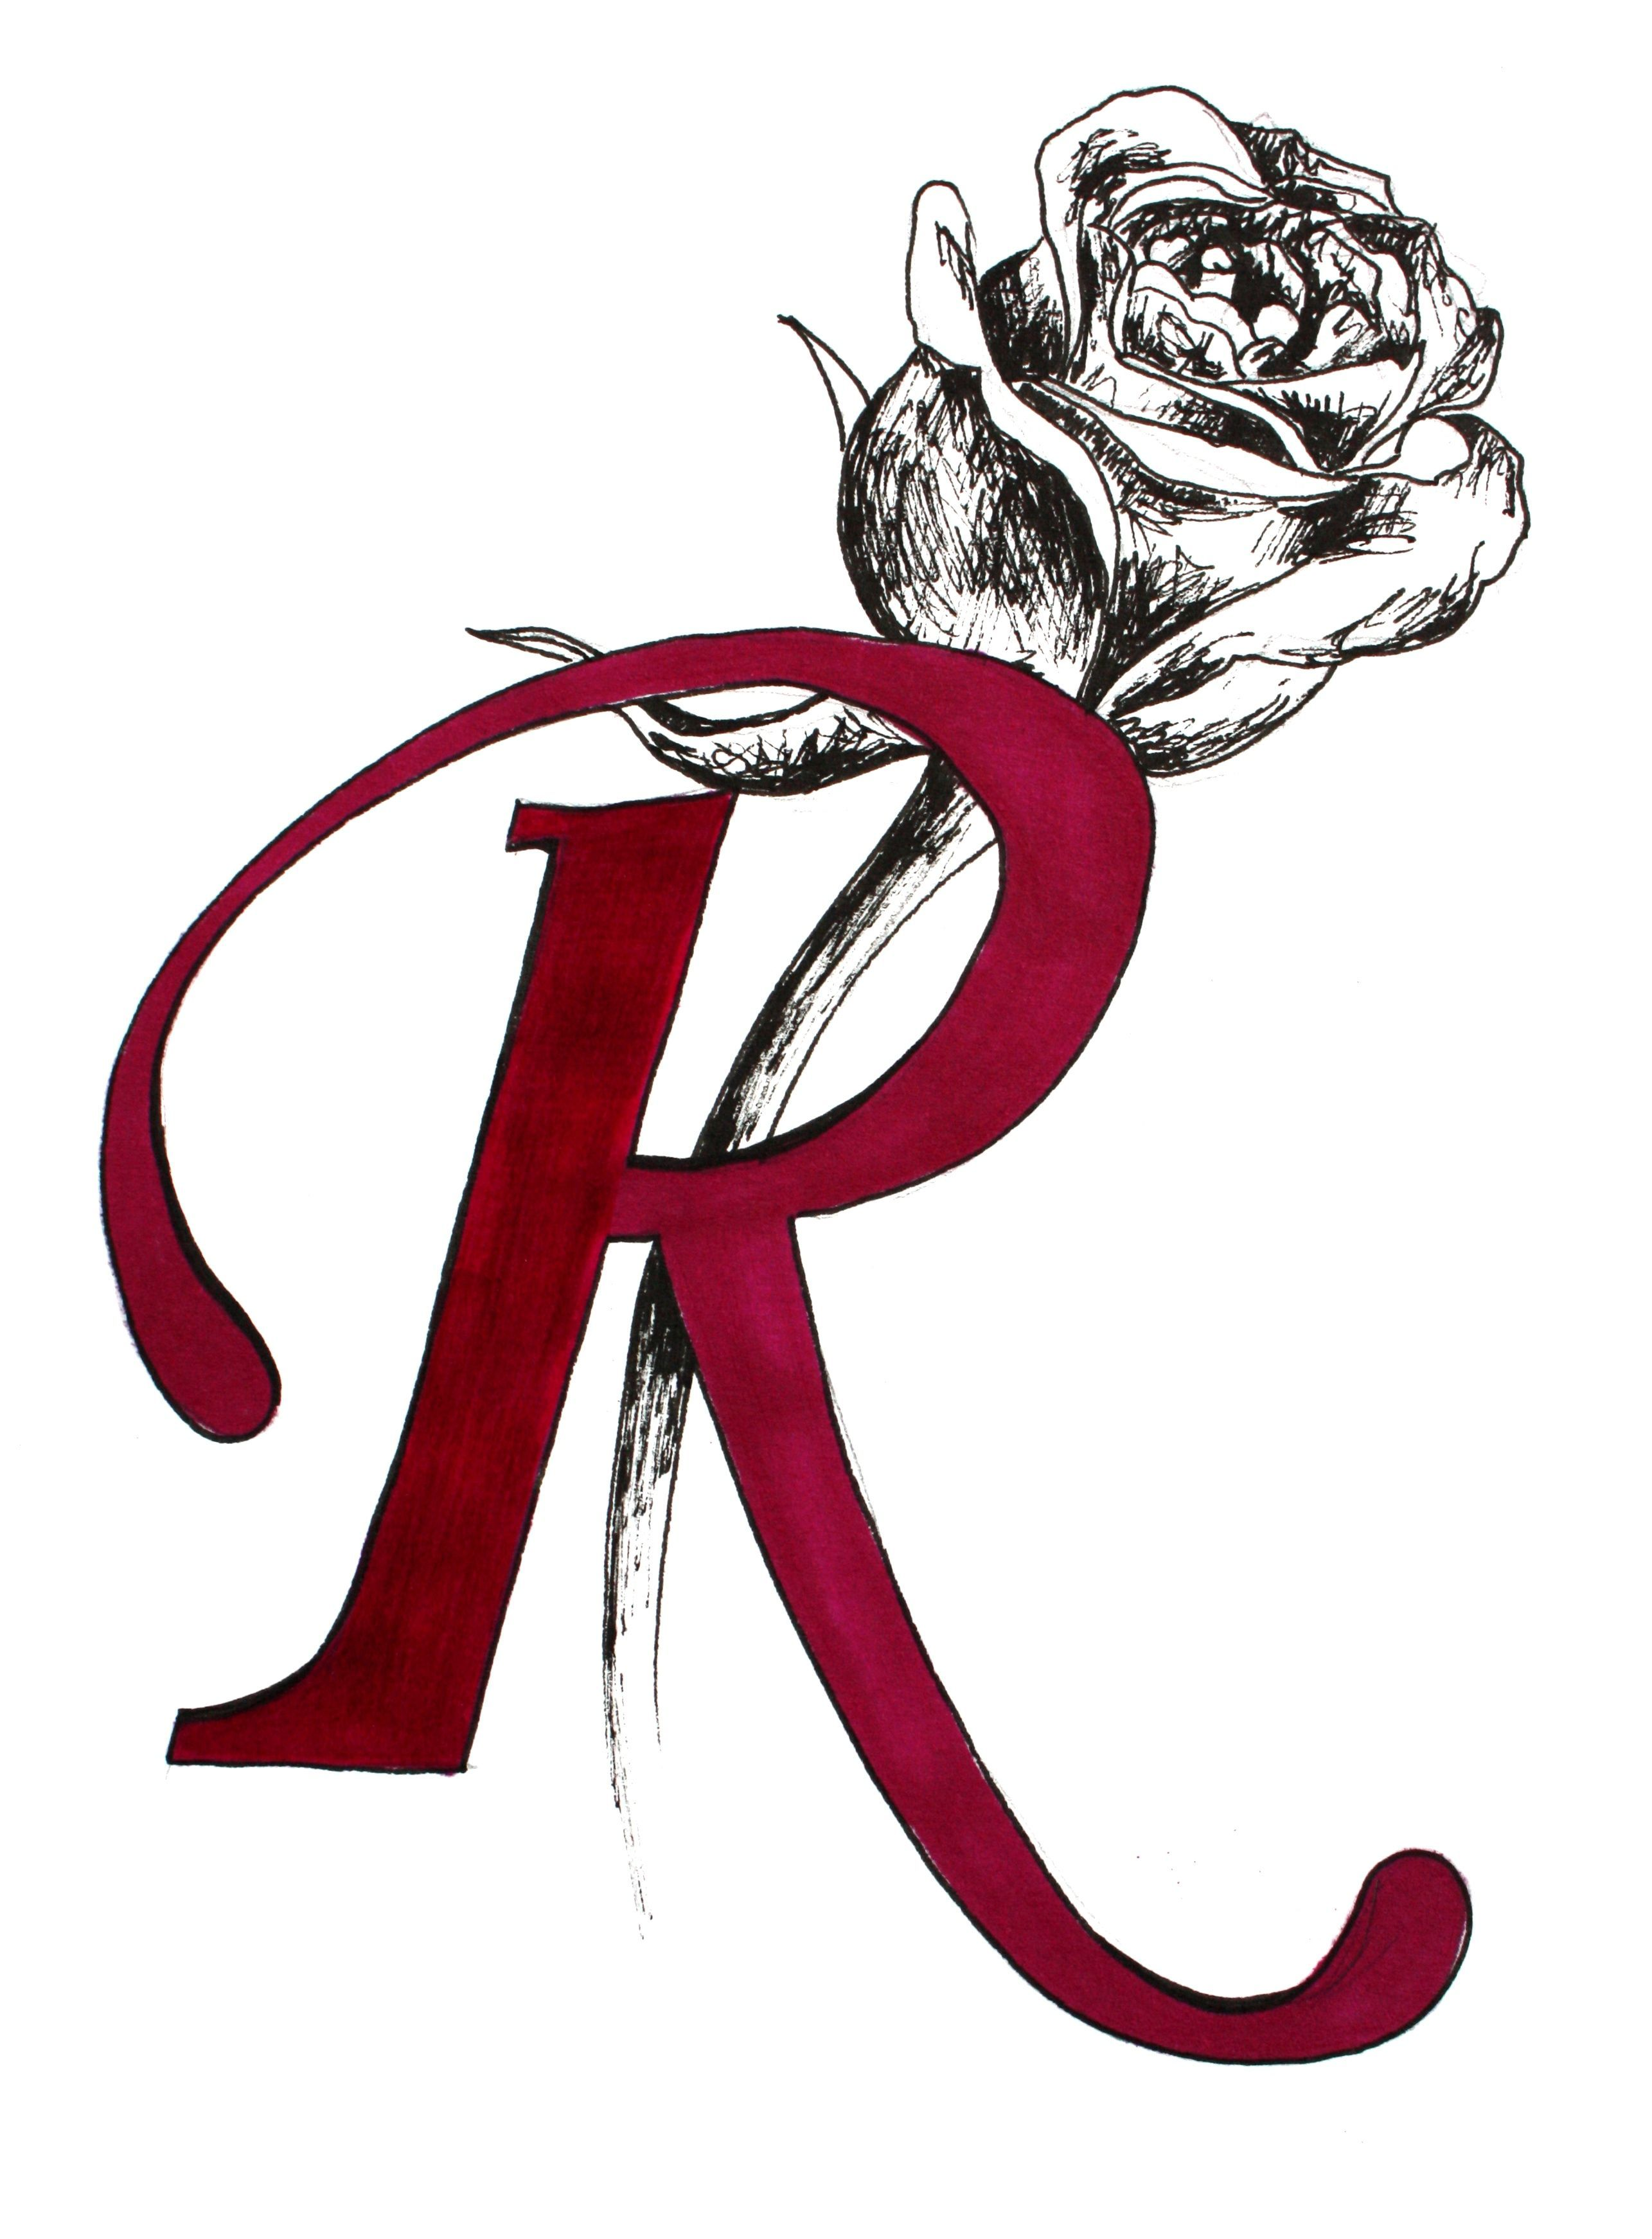 Buchstabe Letter R Name Wallpaper Alphabet Wallpaper Alphabet Letters Design Every day, r.phot and thousands of other voices read, write. buchstabe letter r name wallpaper